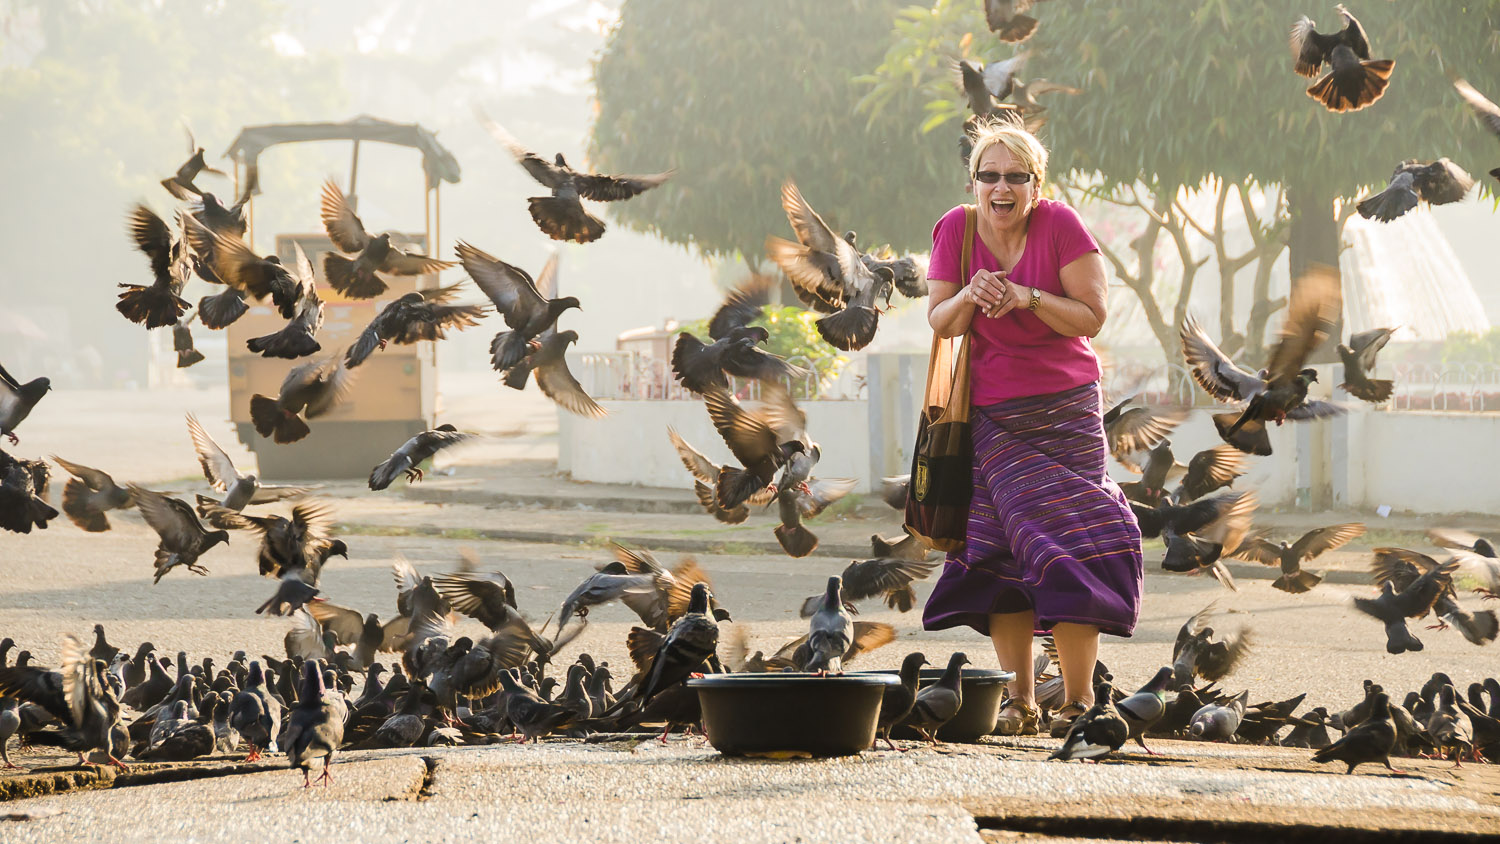 Meeting the birds on the streets of Yangon © Dustin Main 2014